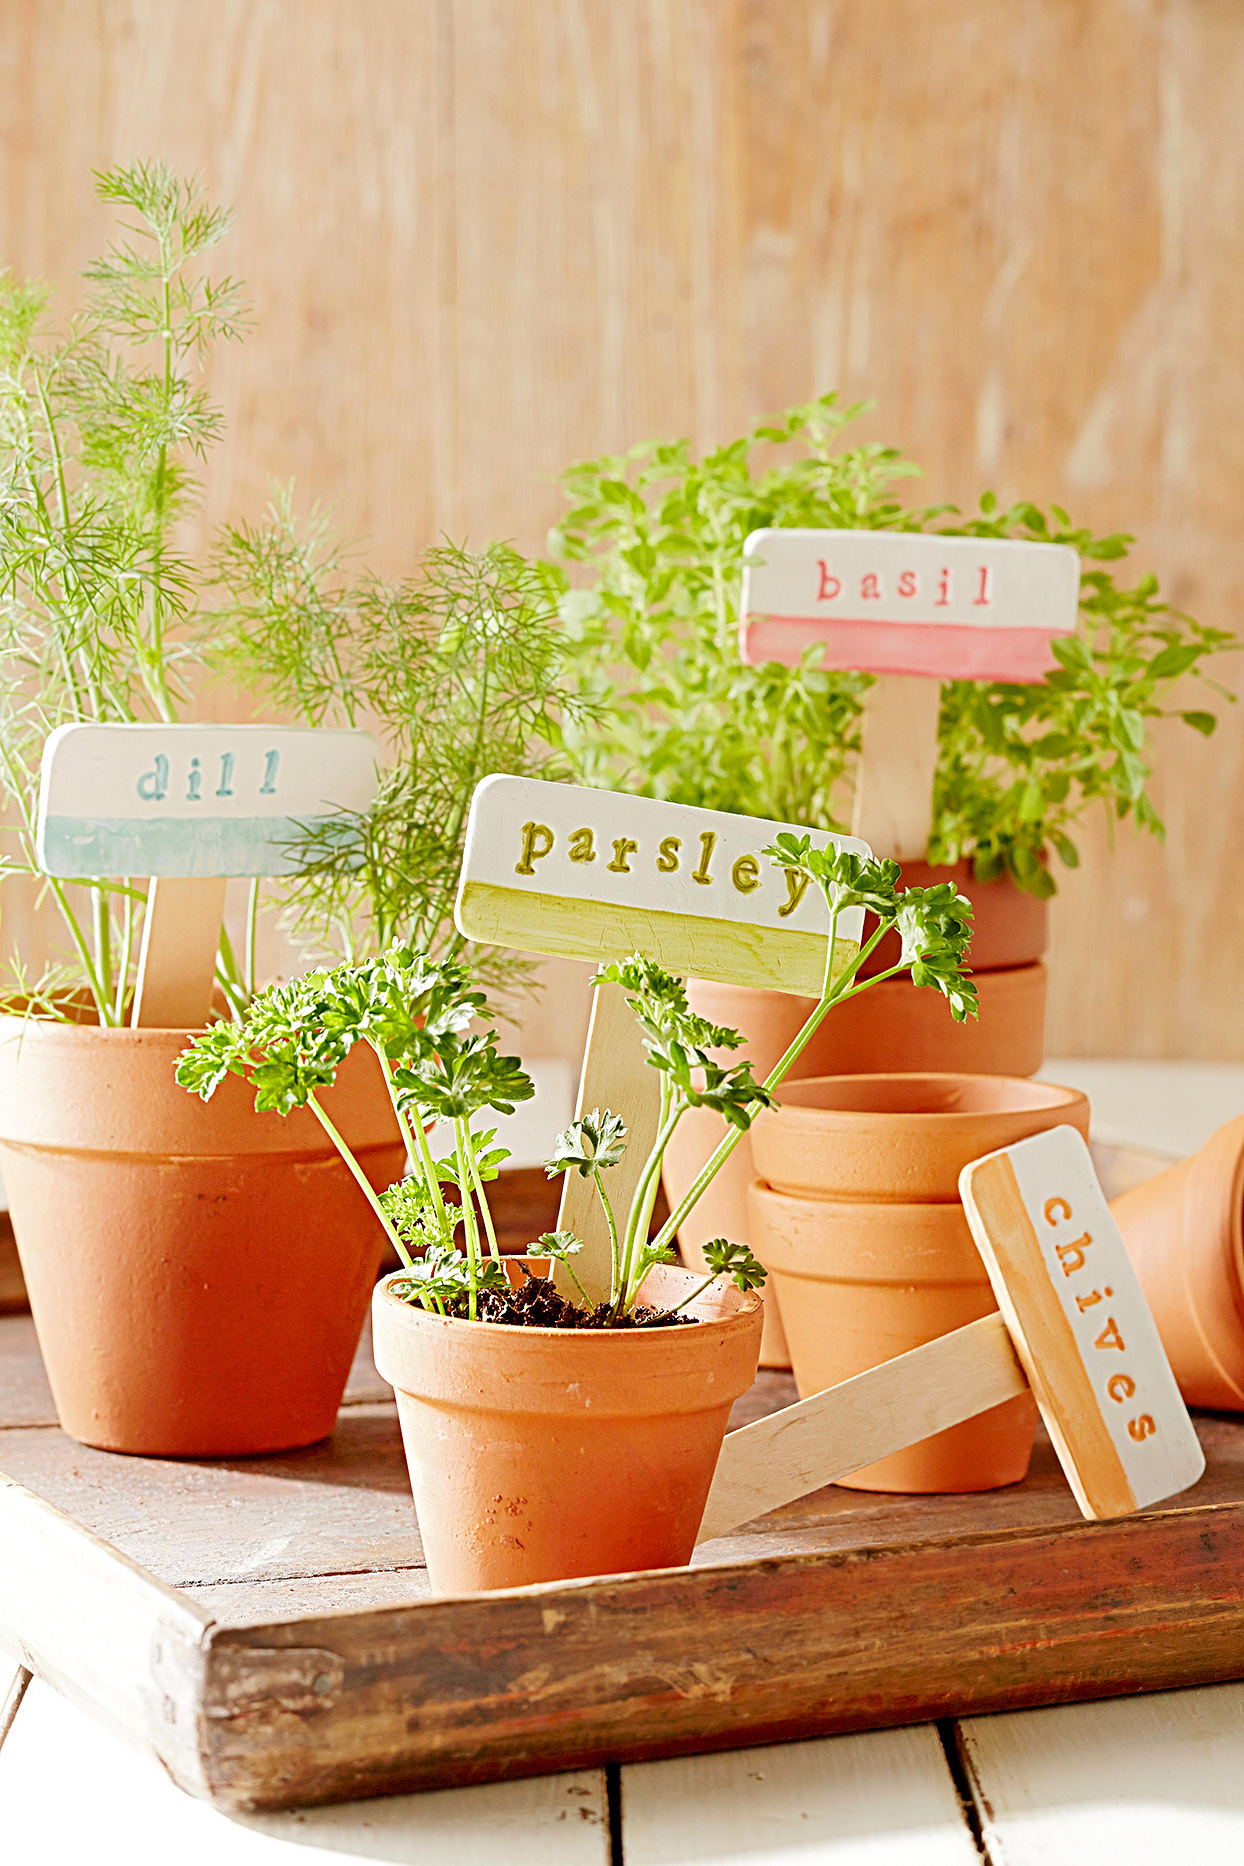 Dill, Parsley, Basil and Chives herbs in clay pots